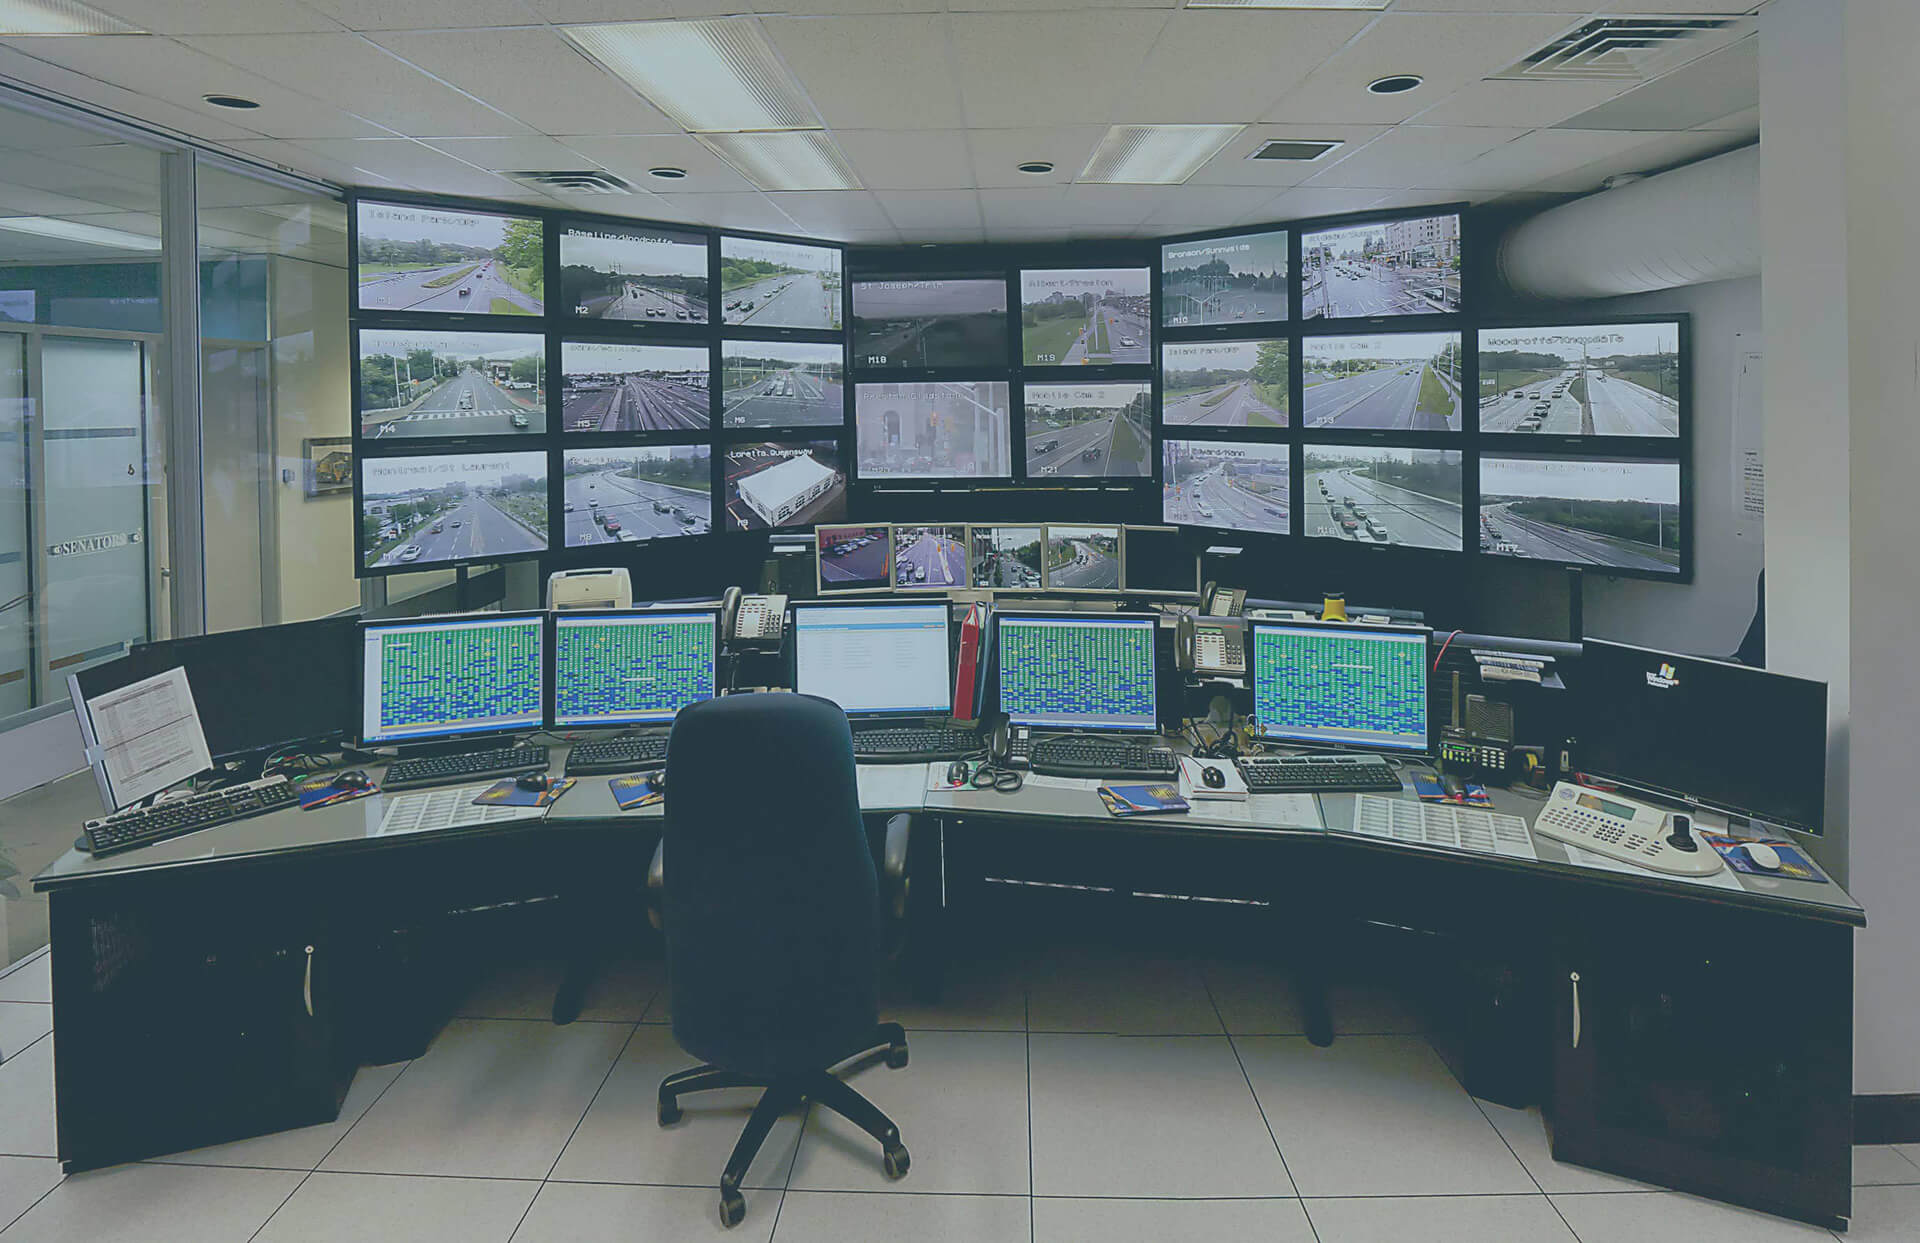 CCTV systems are just a small part of how we are watched | Digital Legacies: Surveillance | STIRworld